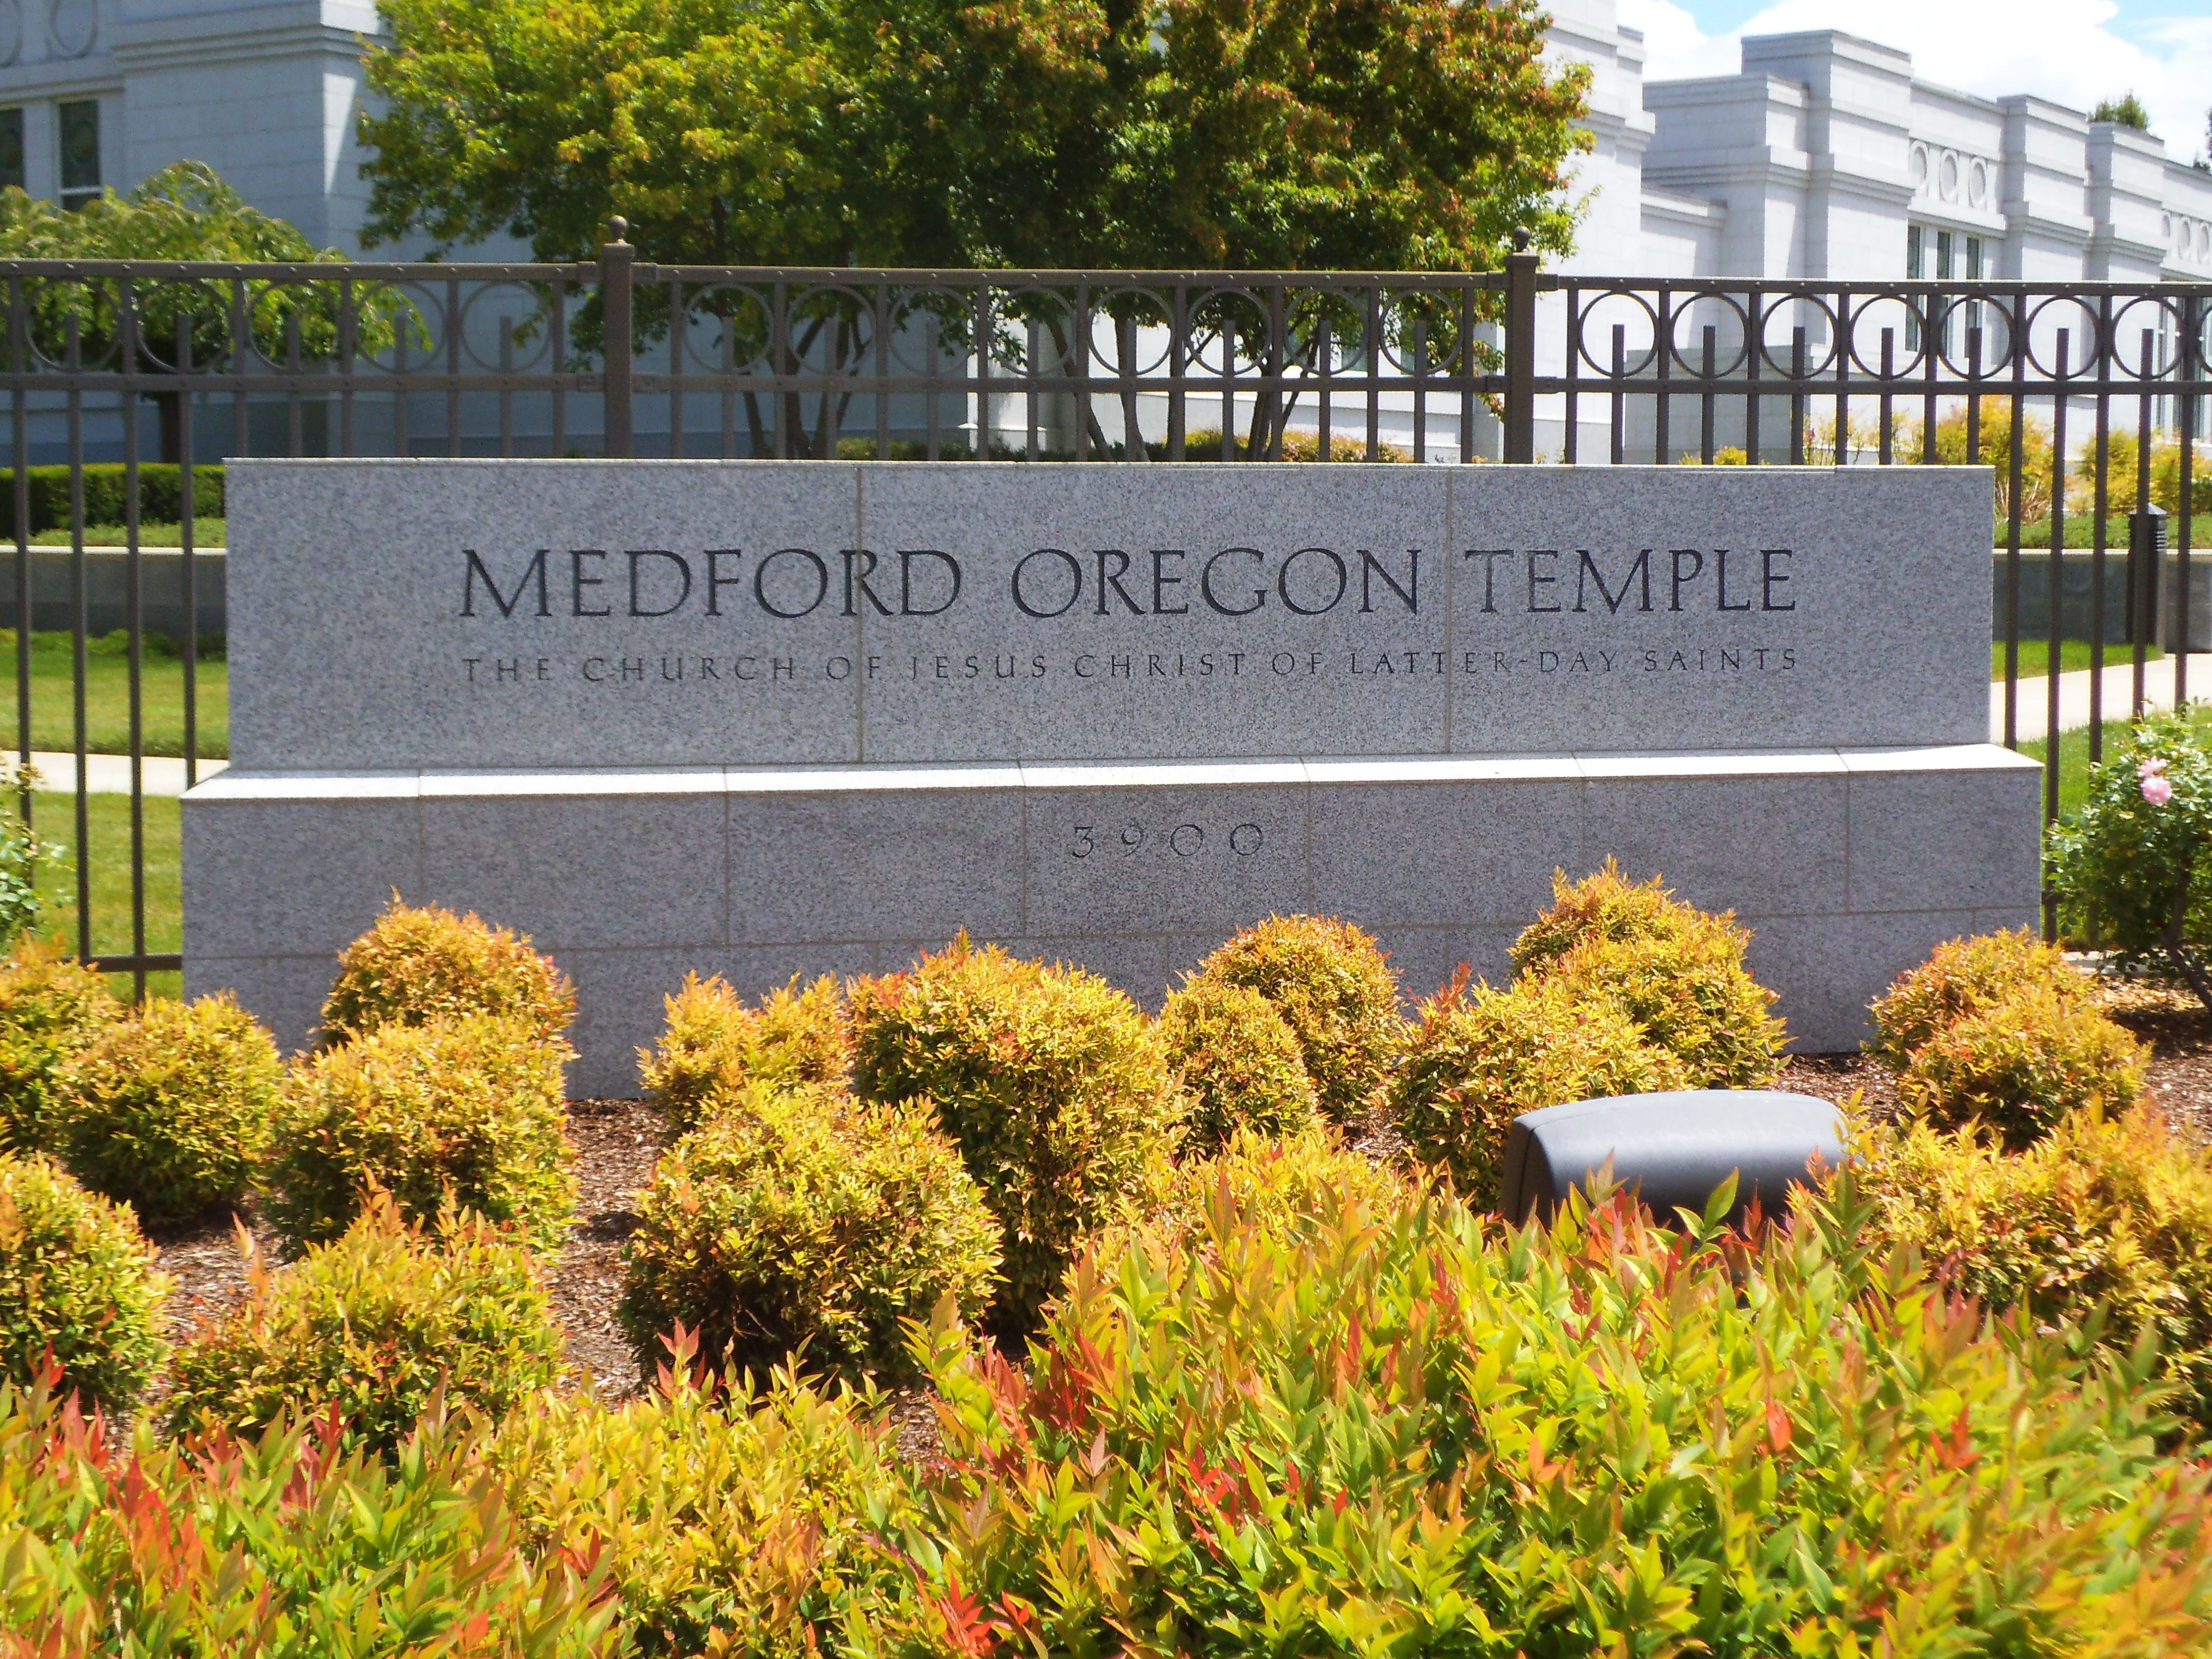 The Medford Oregon Temple name sign, including scenery.